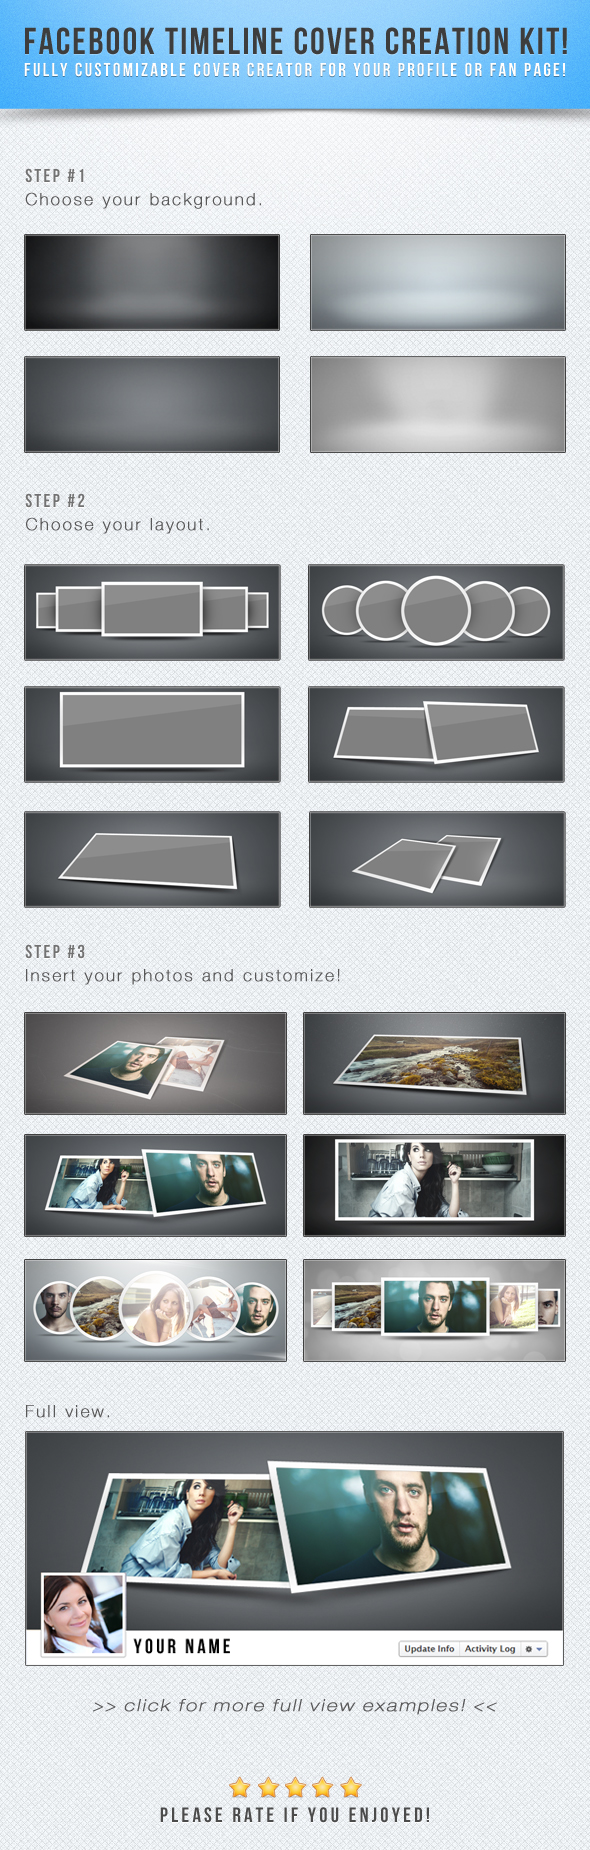 Facebook Timeline Cover Creation Kit by frozencolor